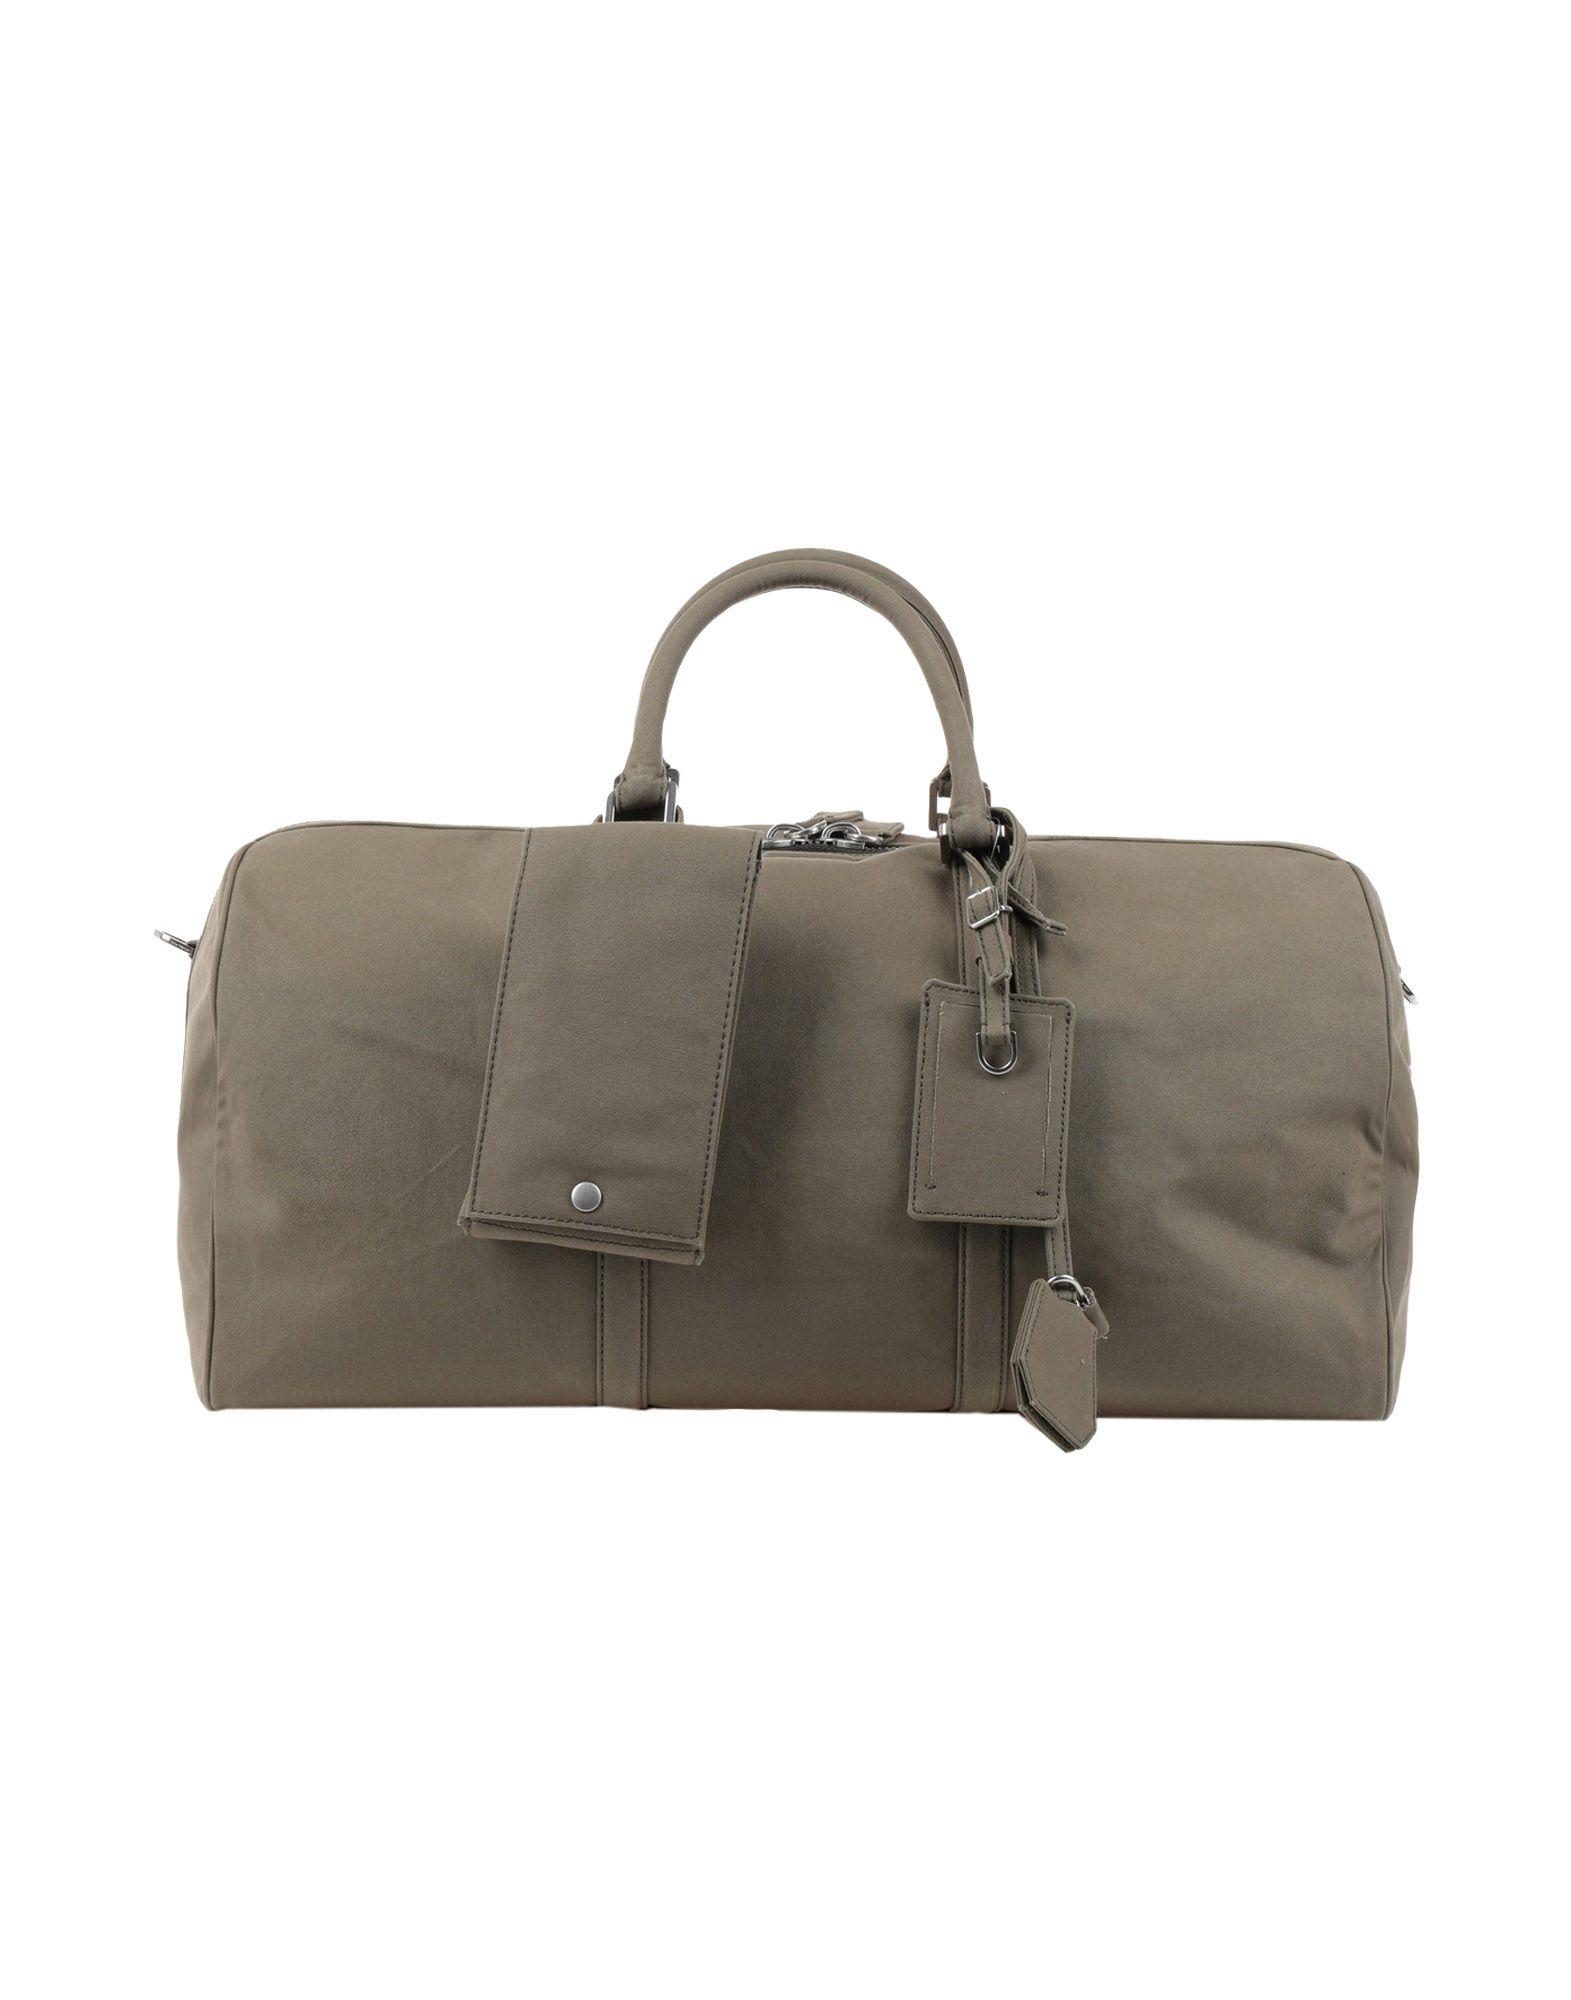 Michael Kors Leathers Travel & duffel bag